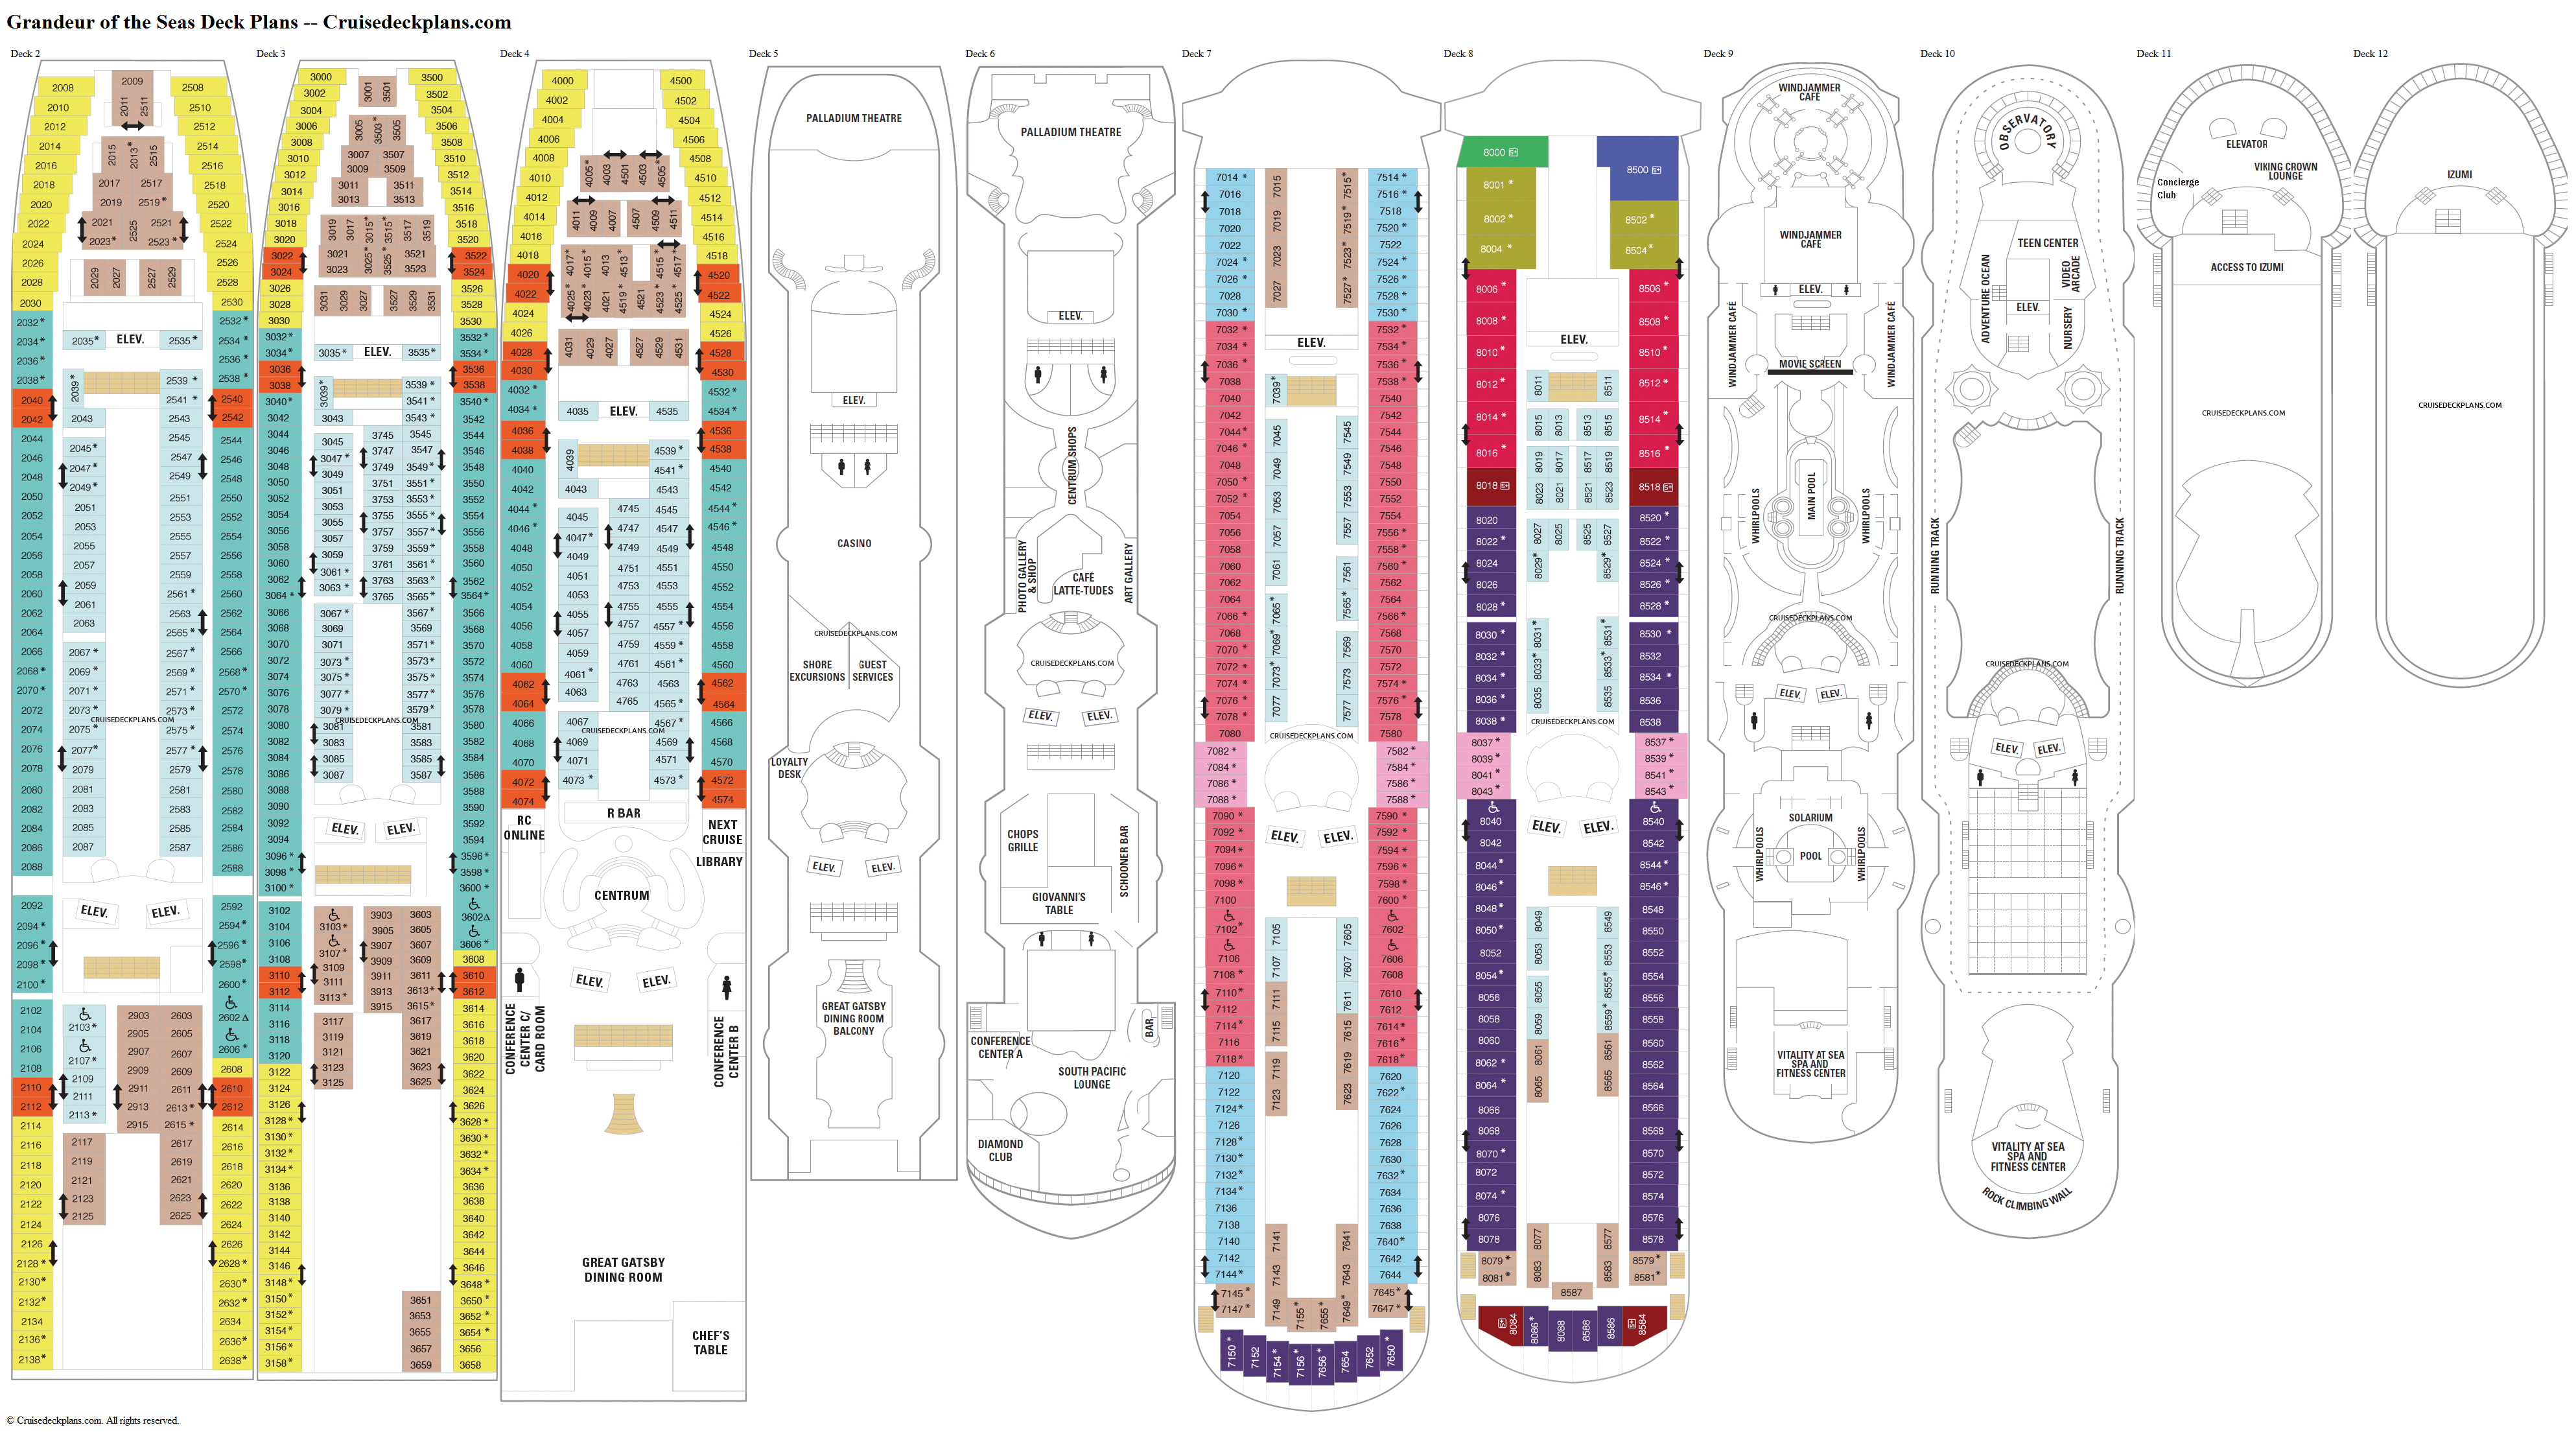 Grandeur of the Seas deck plans image